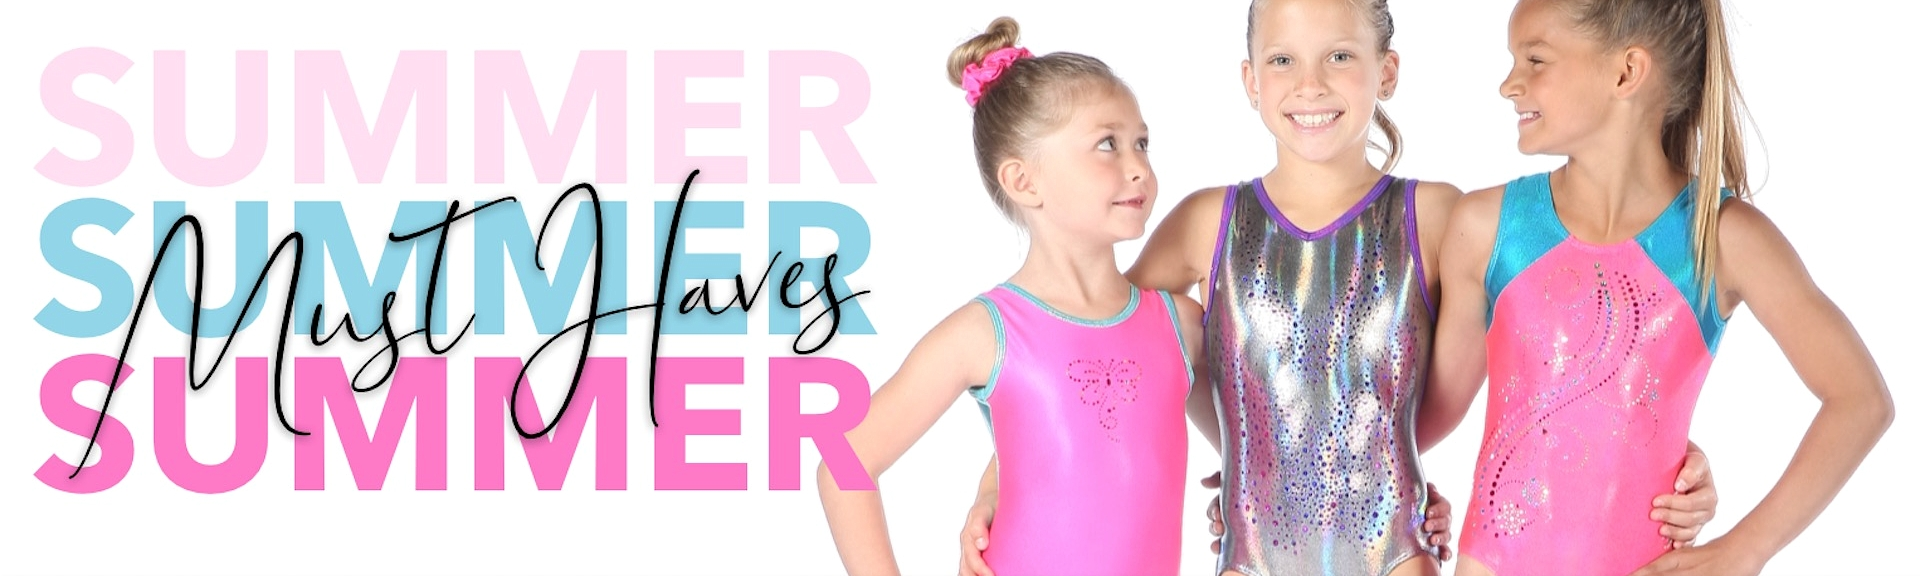 c113276d23f7f Highest Quality Gymnastics Leotards and Apparel at Affordable Prices